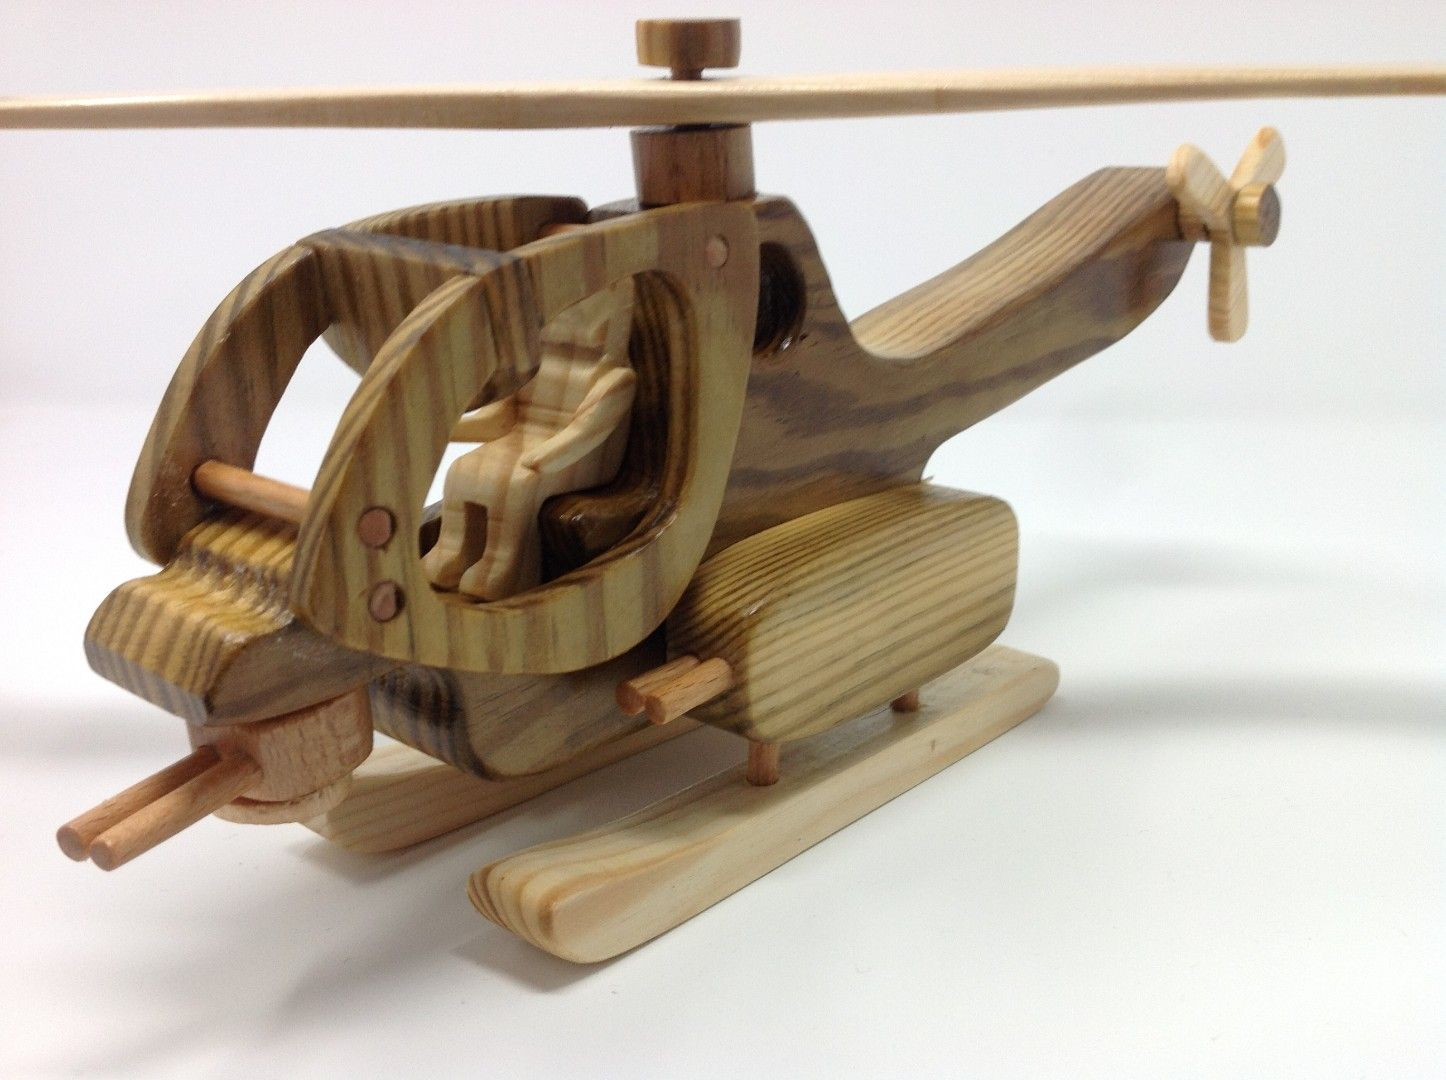 Wooden toys images  Handmade Handcrafted Wooden Toys Wood Toy Helicopter Toys For